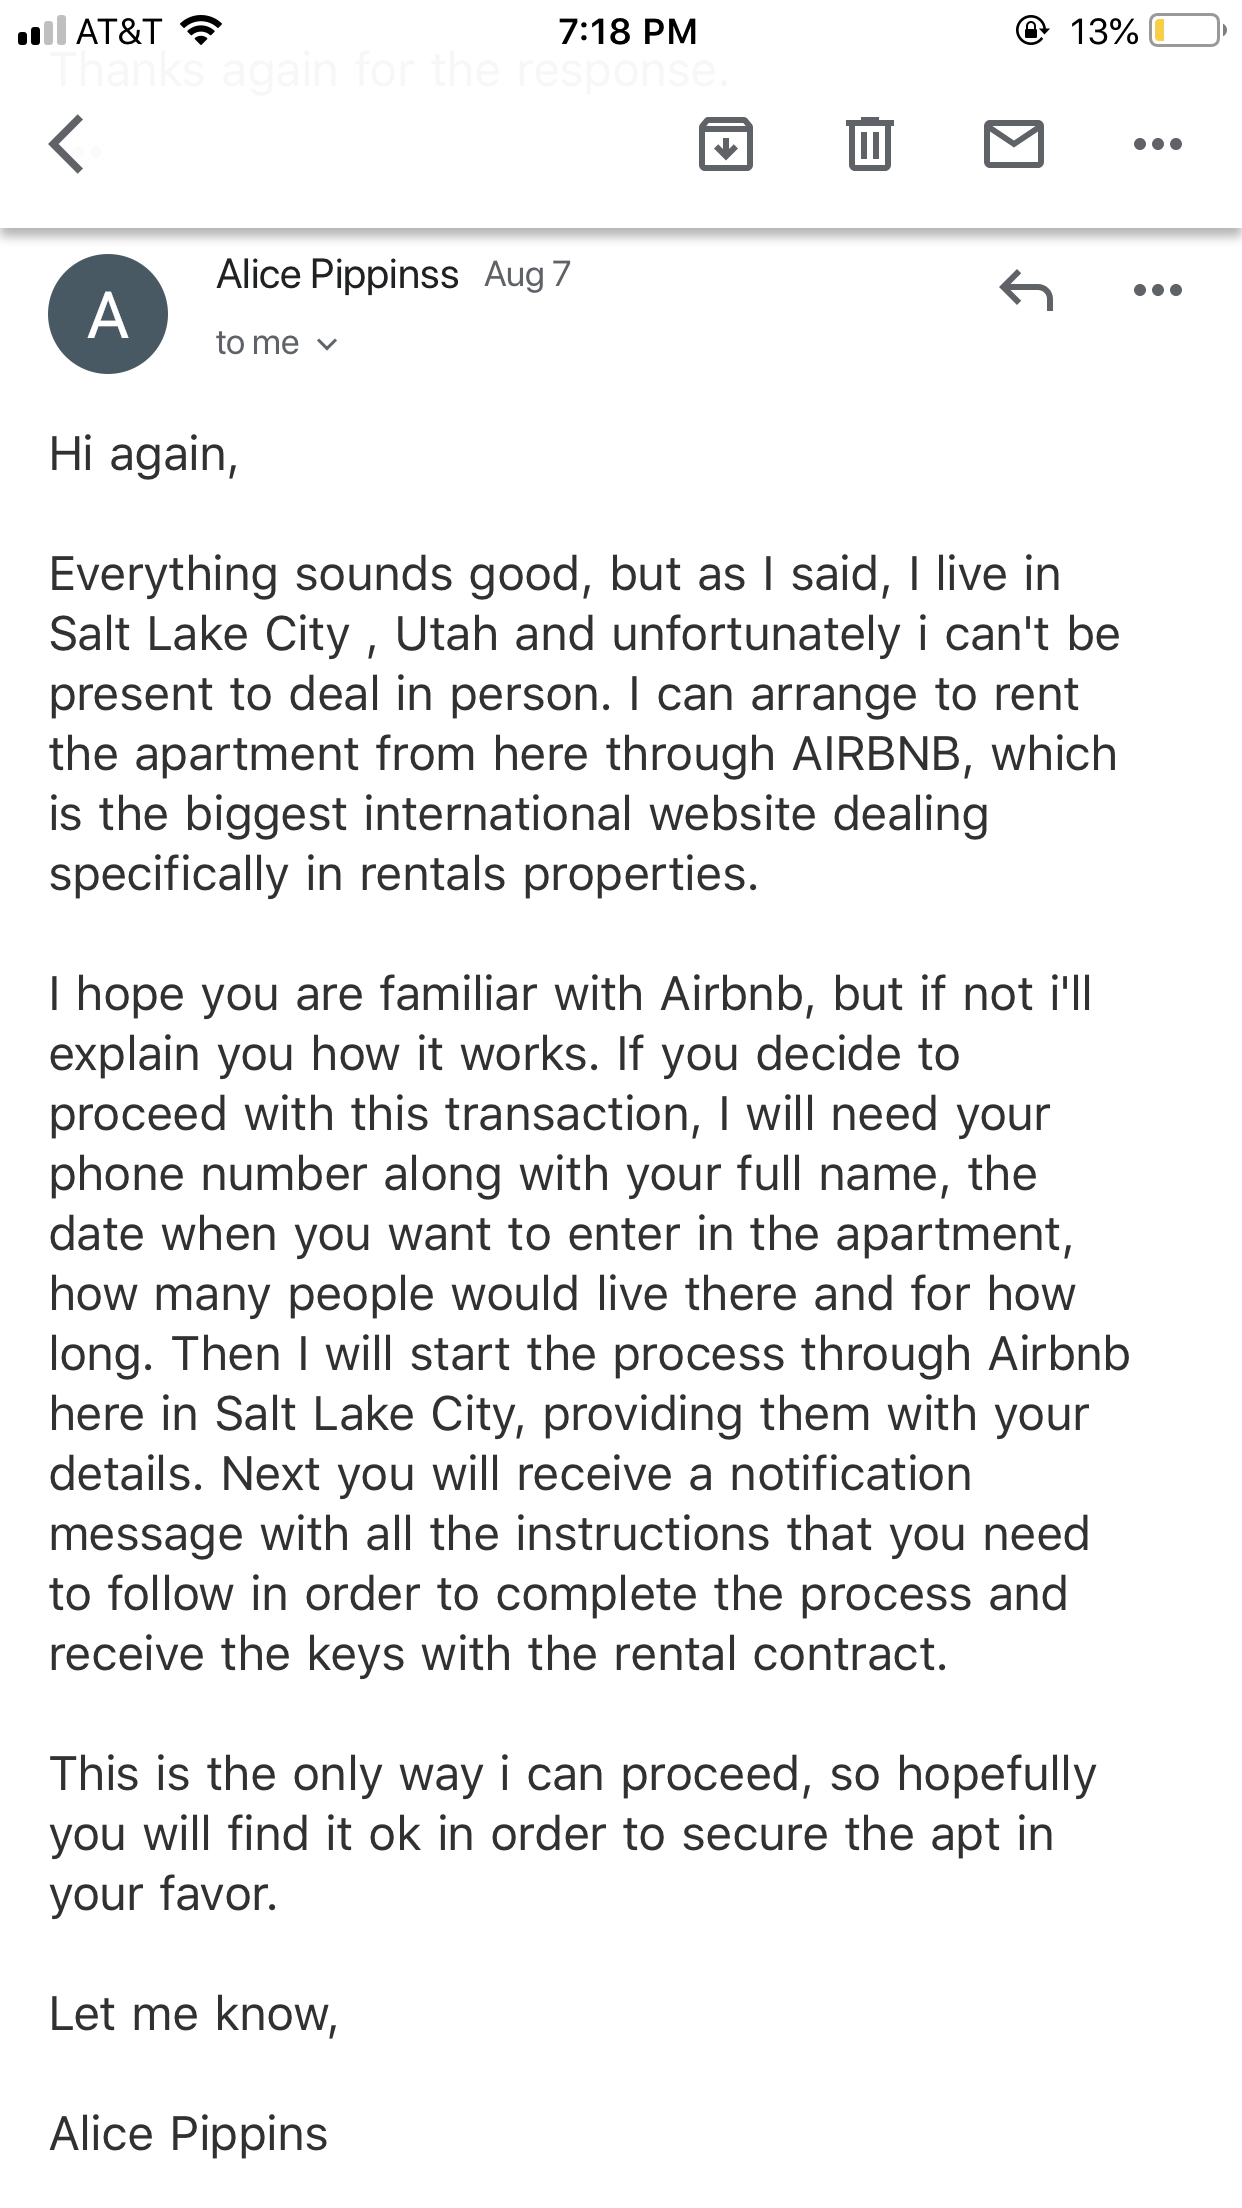 Solved: Rental Scam! Red Flags and How to Avoid  - Airbnb